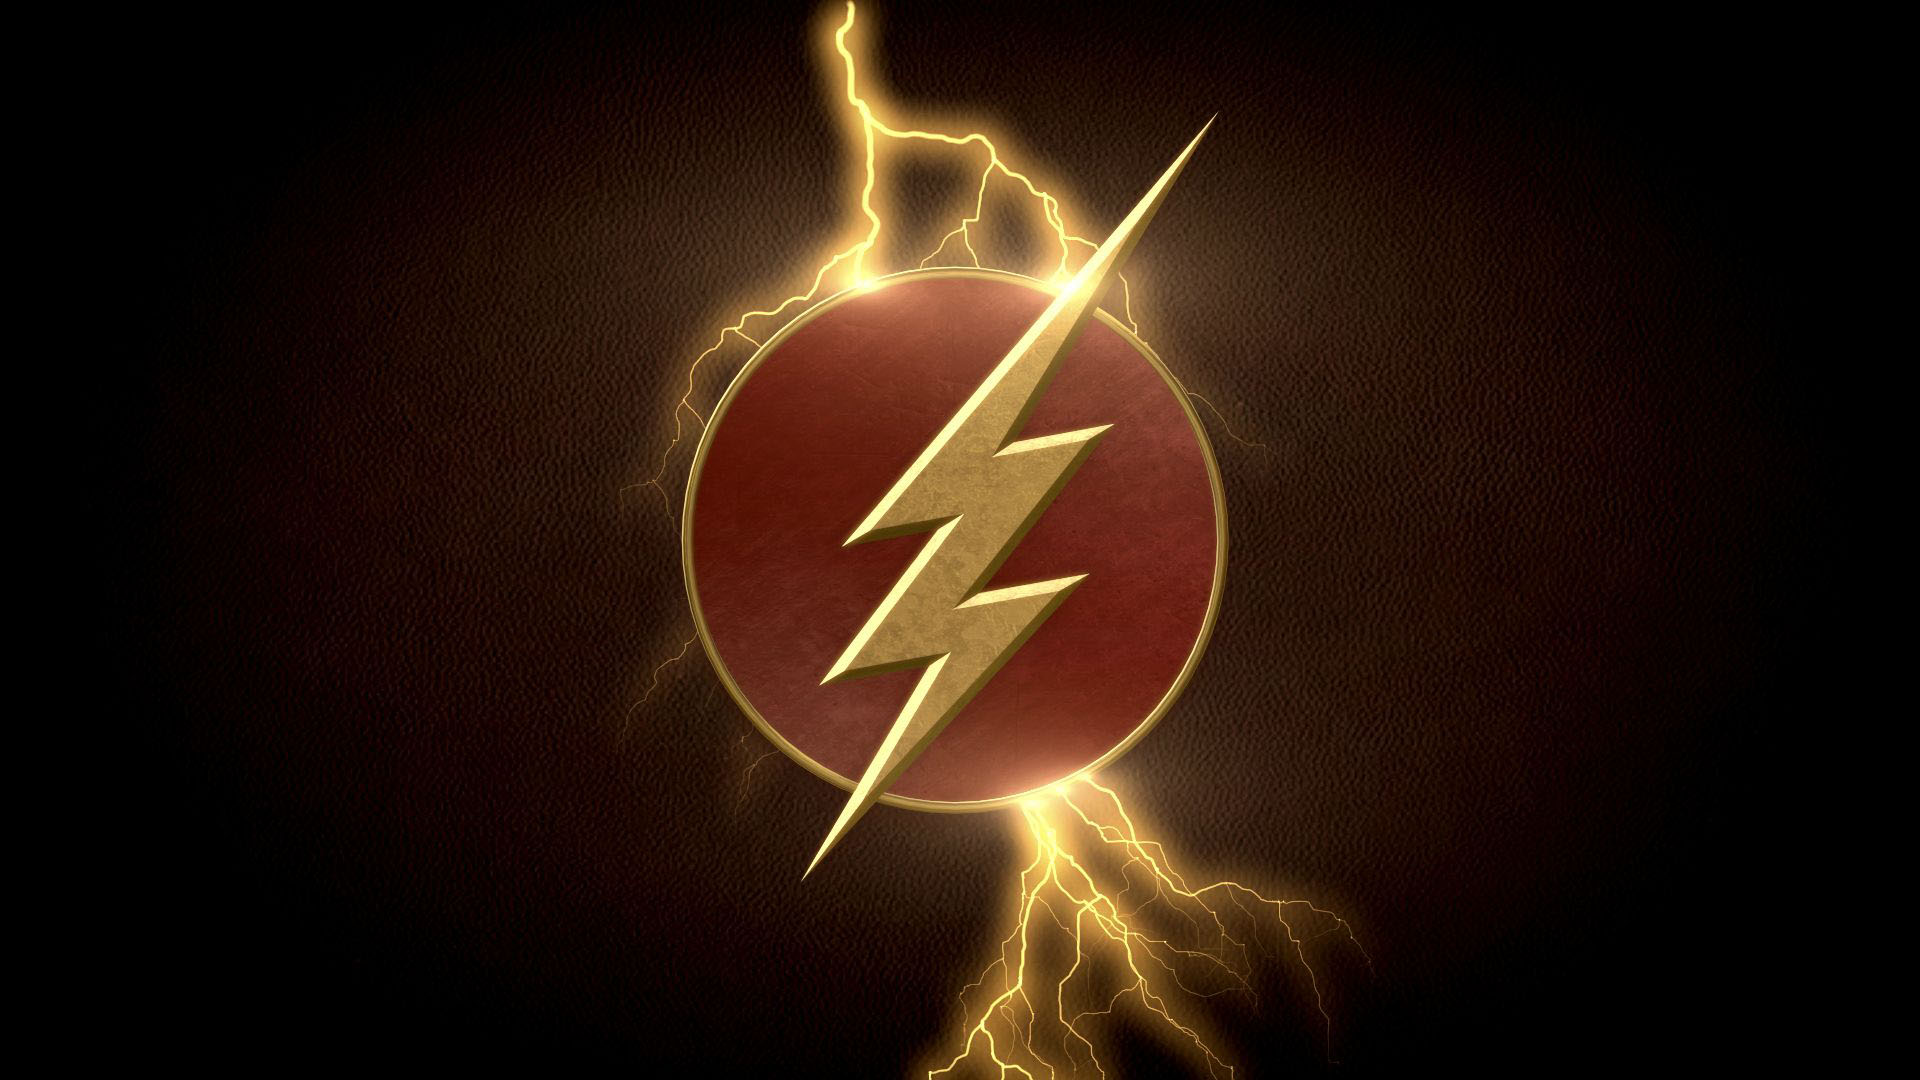 The Flash logo black